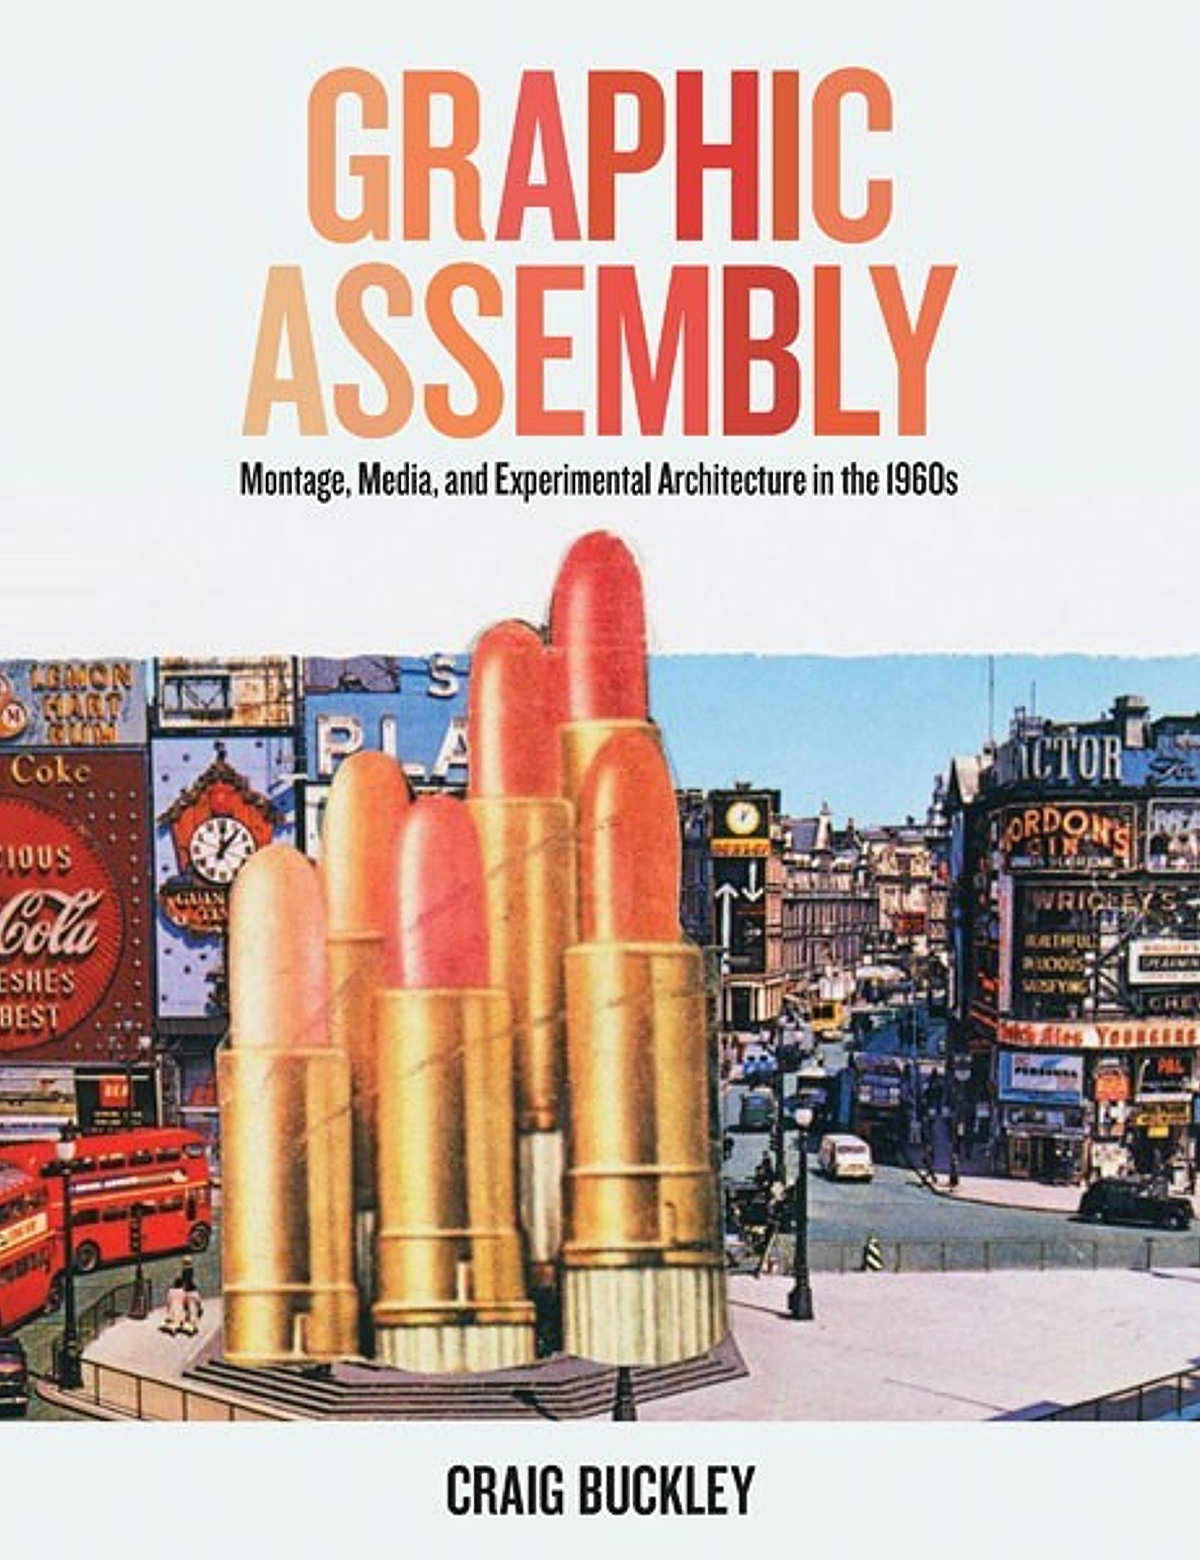 Graphic Assembly - Montage, Media, and Experimental Architecture in the 1960s